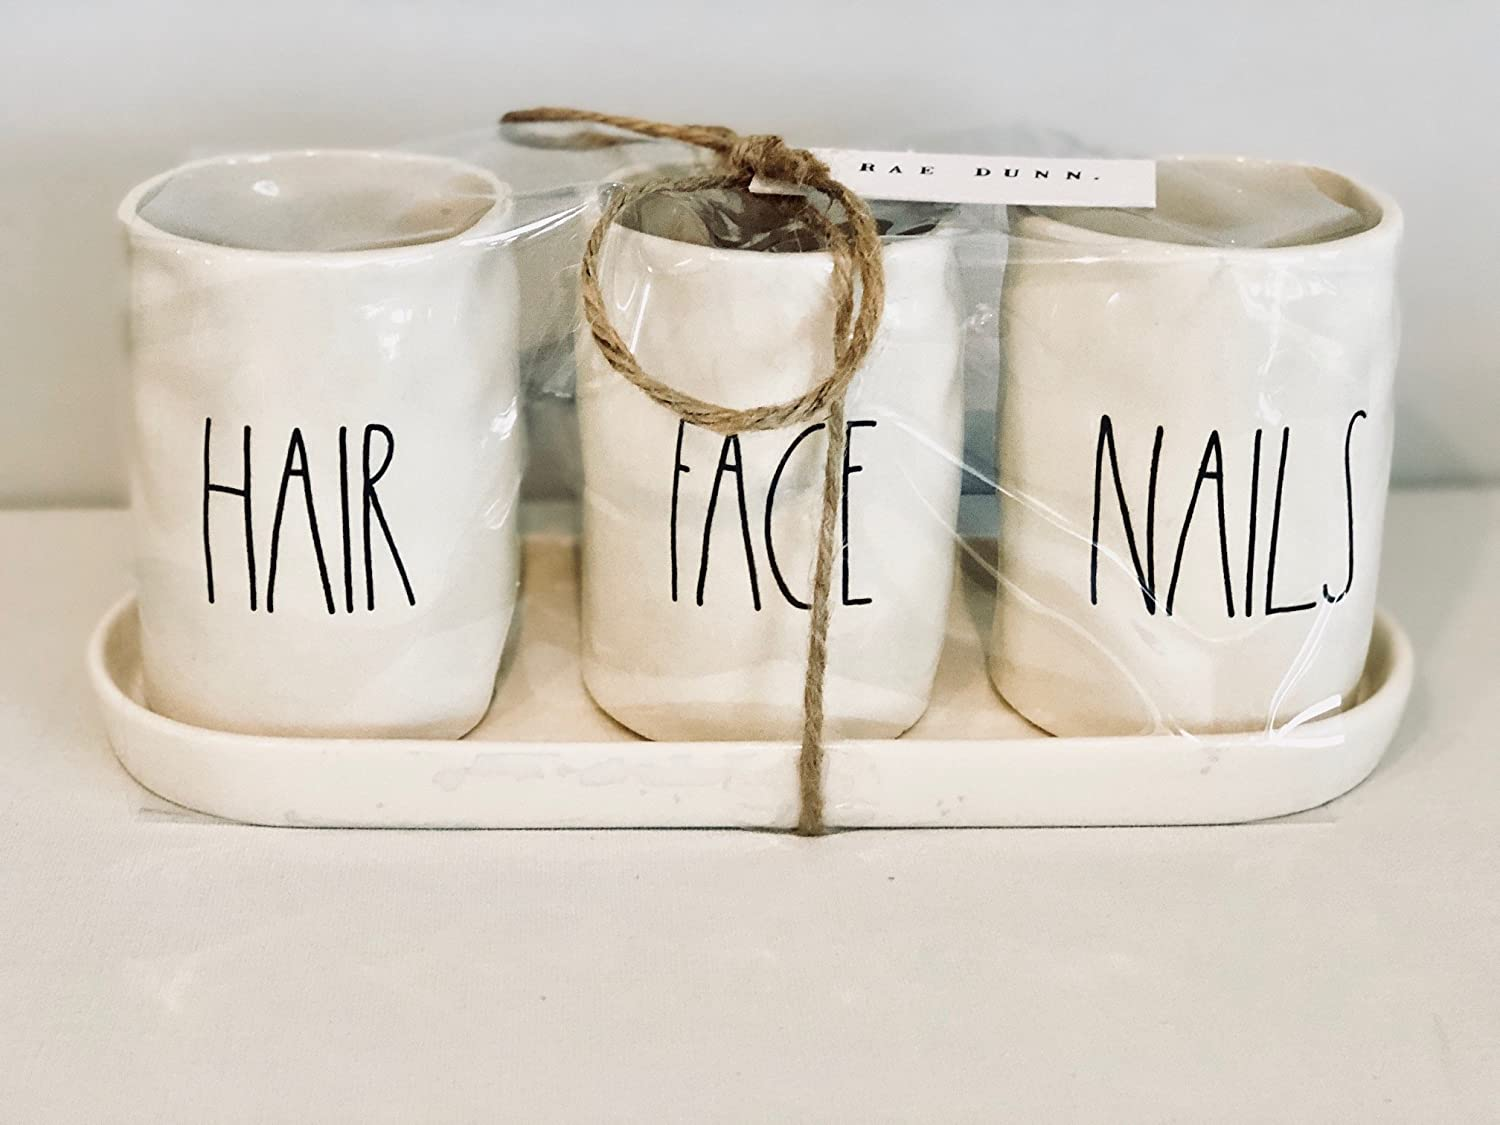 Rae Dunn by Magenta Artisan Collection, set of 3 cosmetic holders - HAIR FACE NAILS with tray